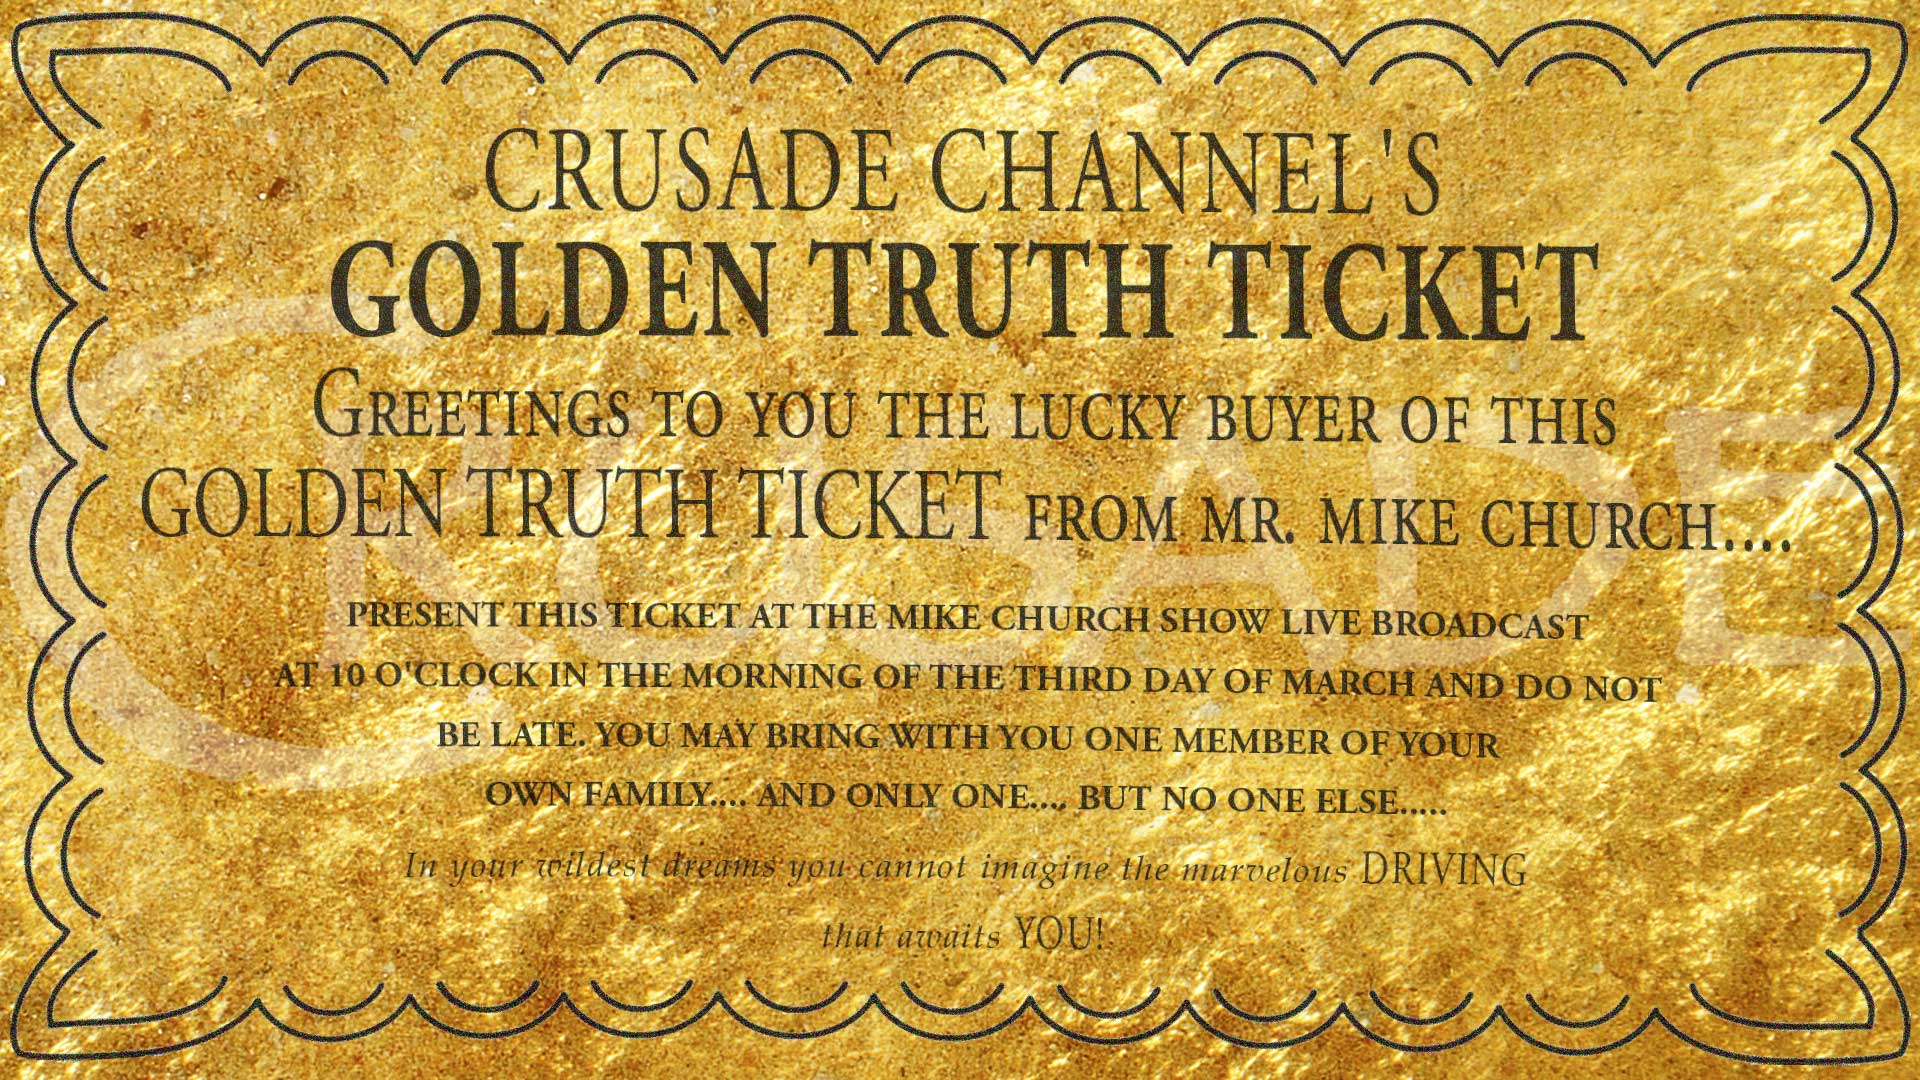 Golden truth ticket